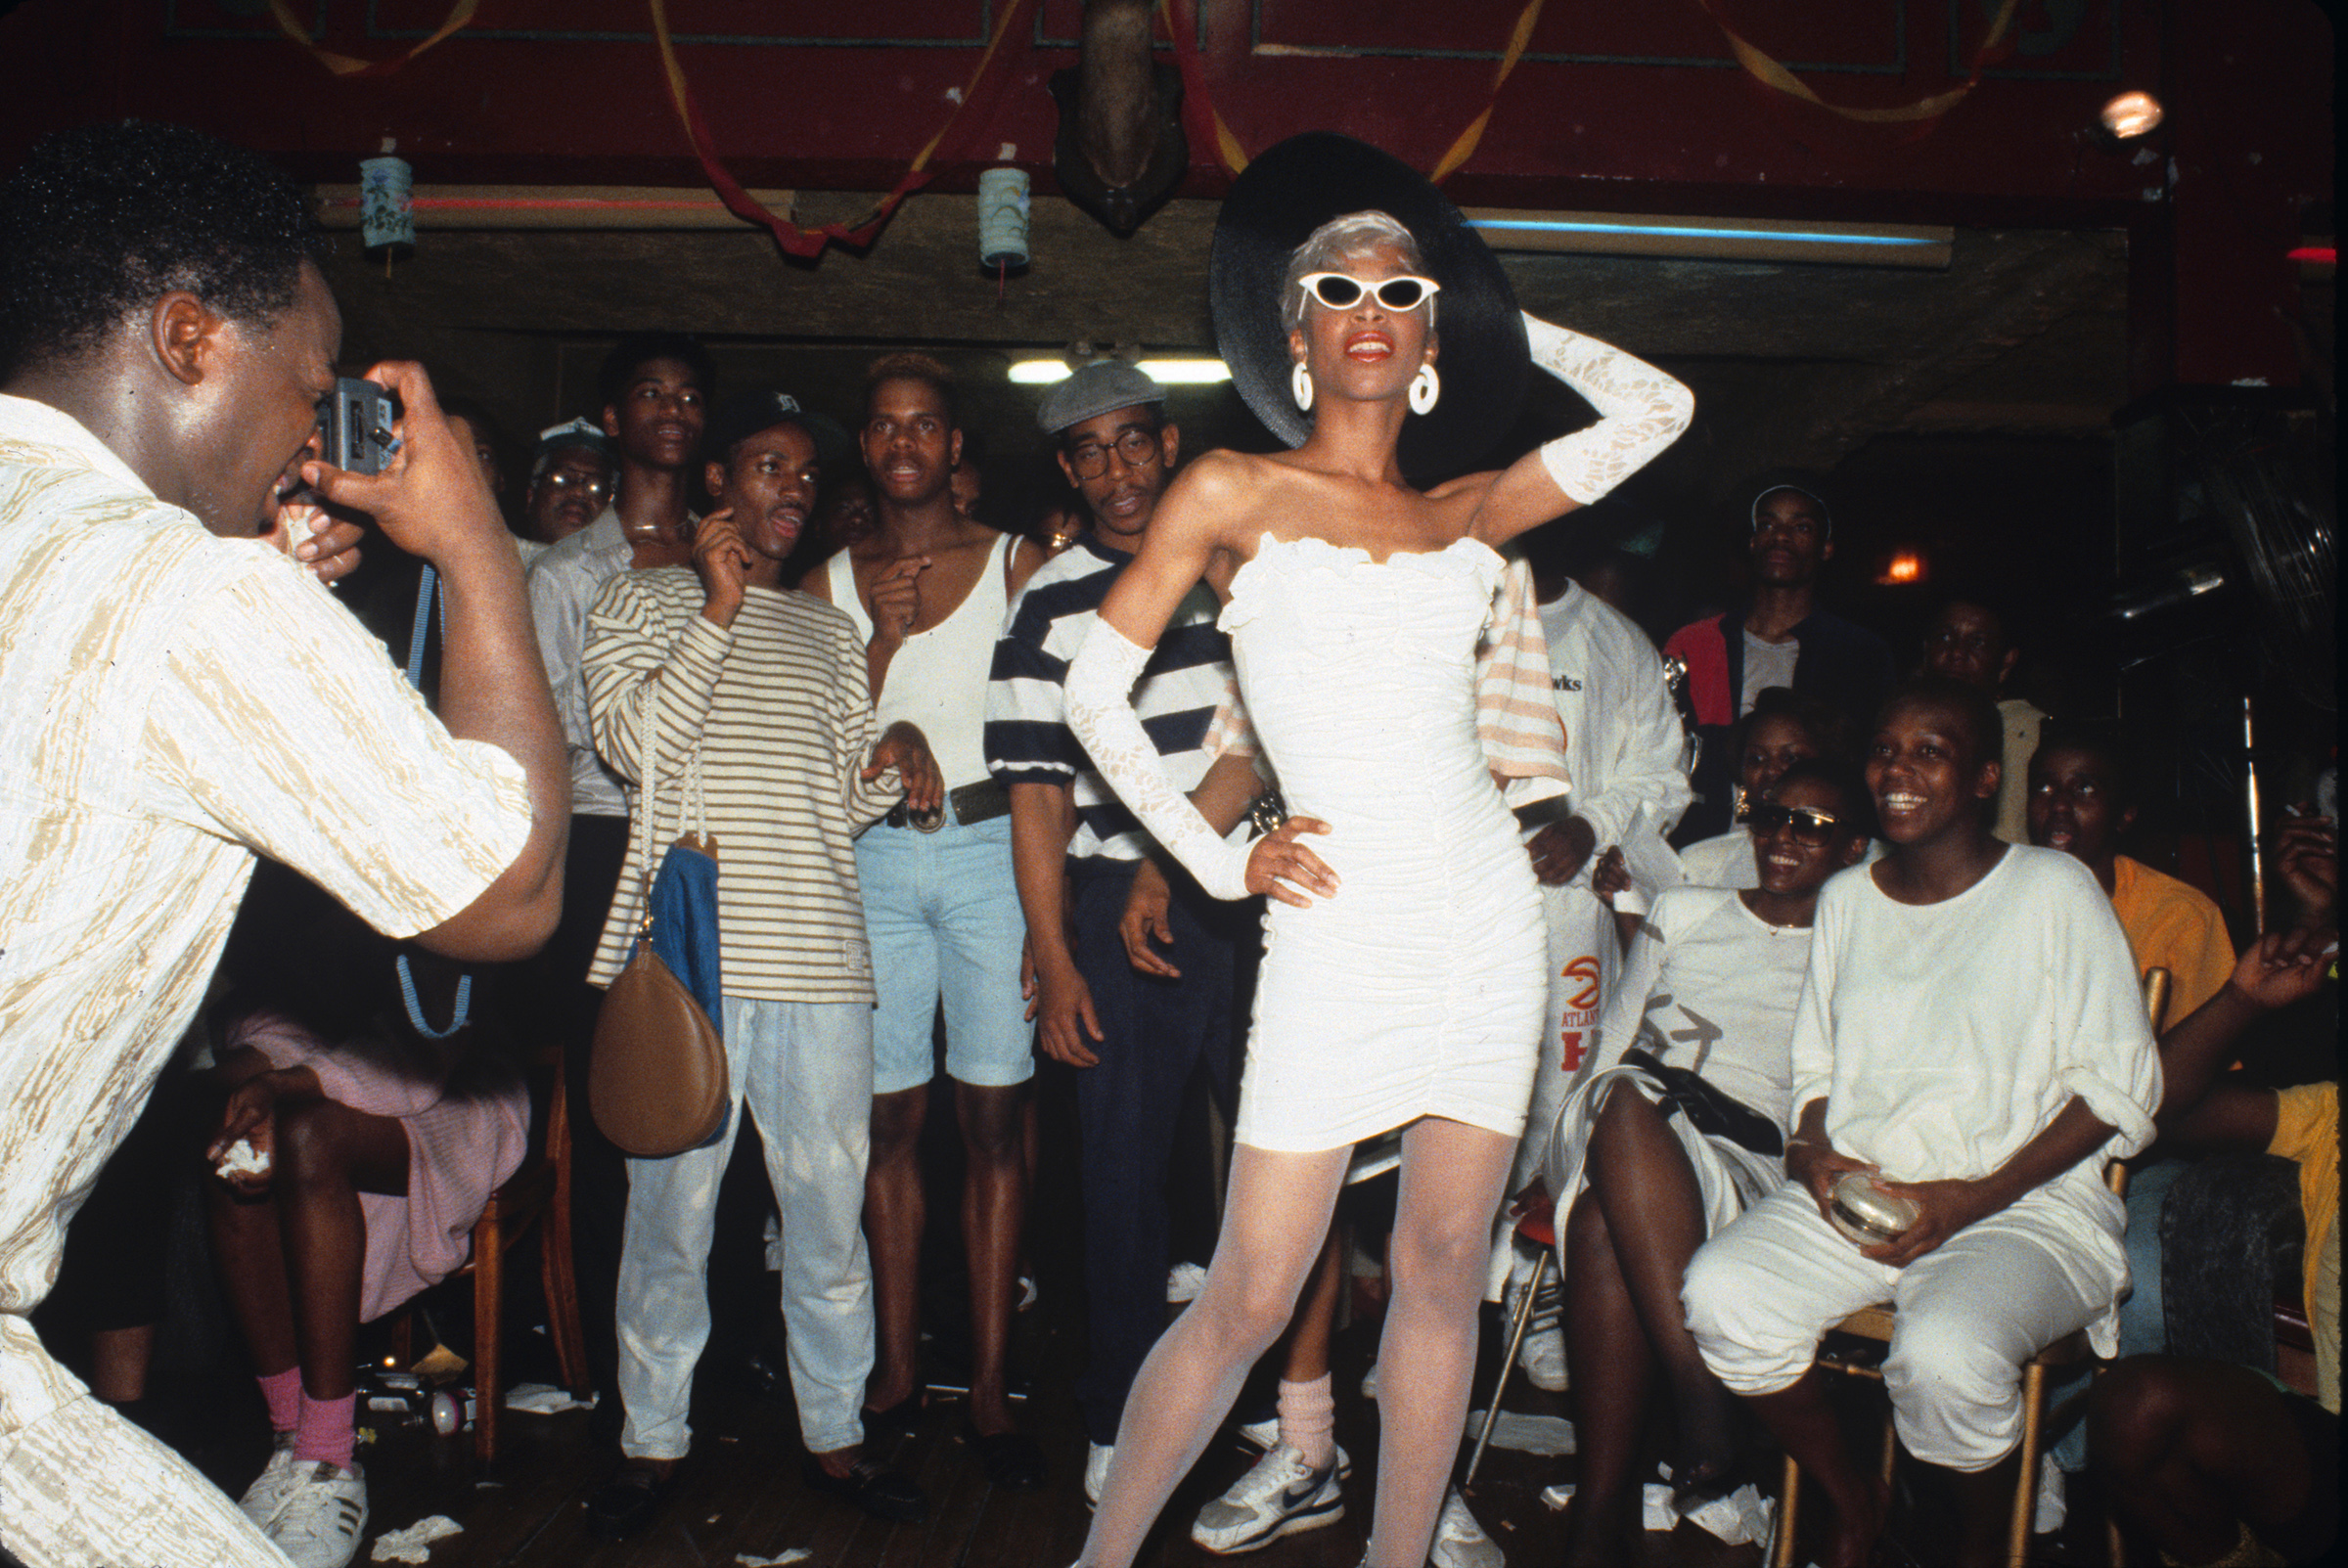 Octavia St. Laurent attends a Drag Ball in New York in 1988.